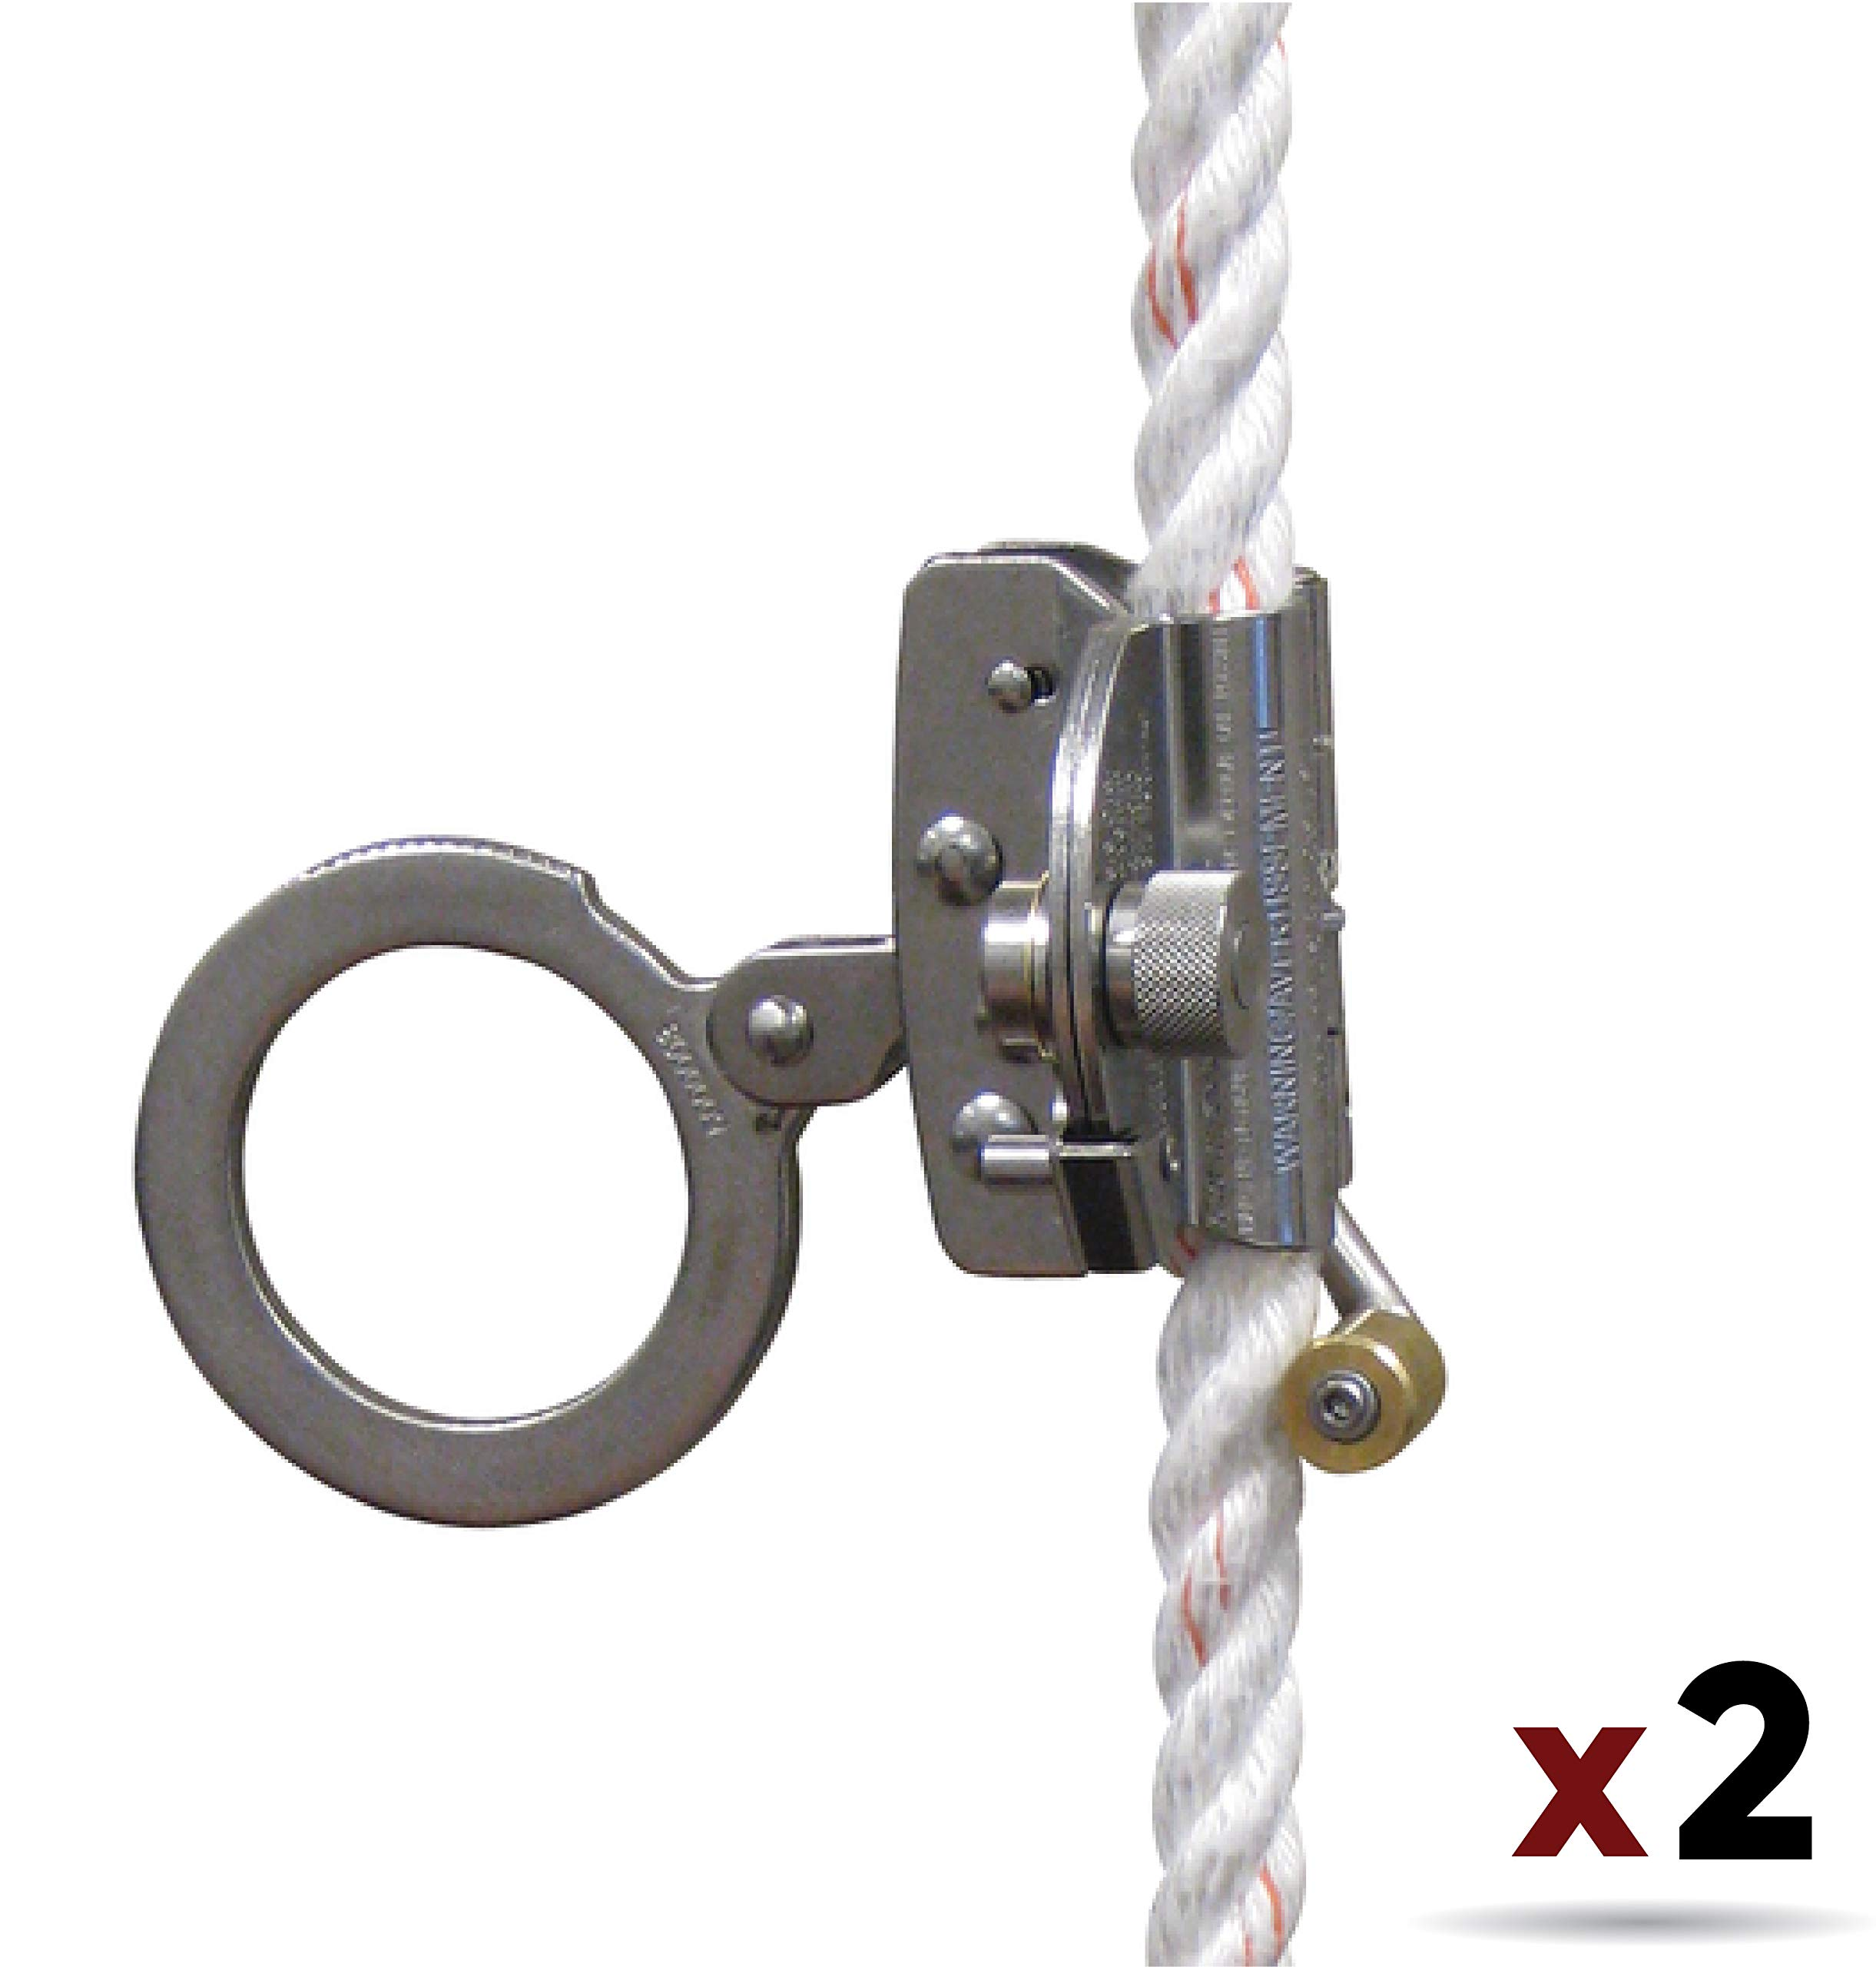 3M Protecta 5000003 Rope Grab for 5/8'' Polyester/Polypropylene Rope, Silver (2 Pack)